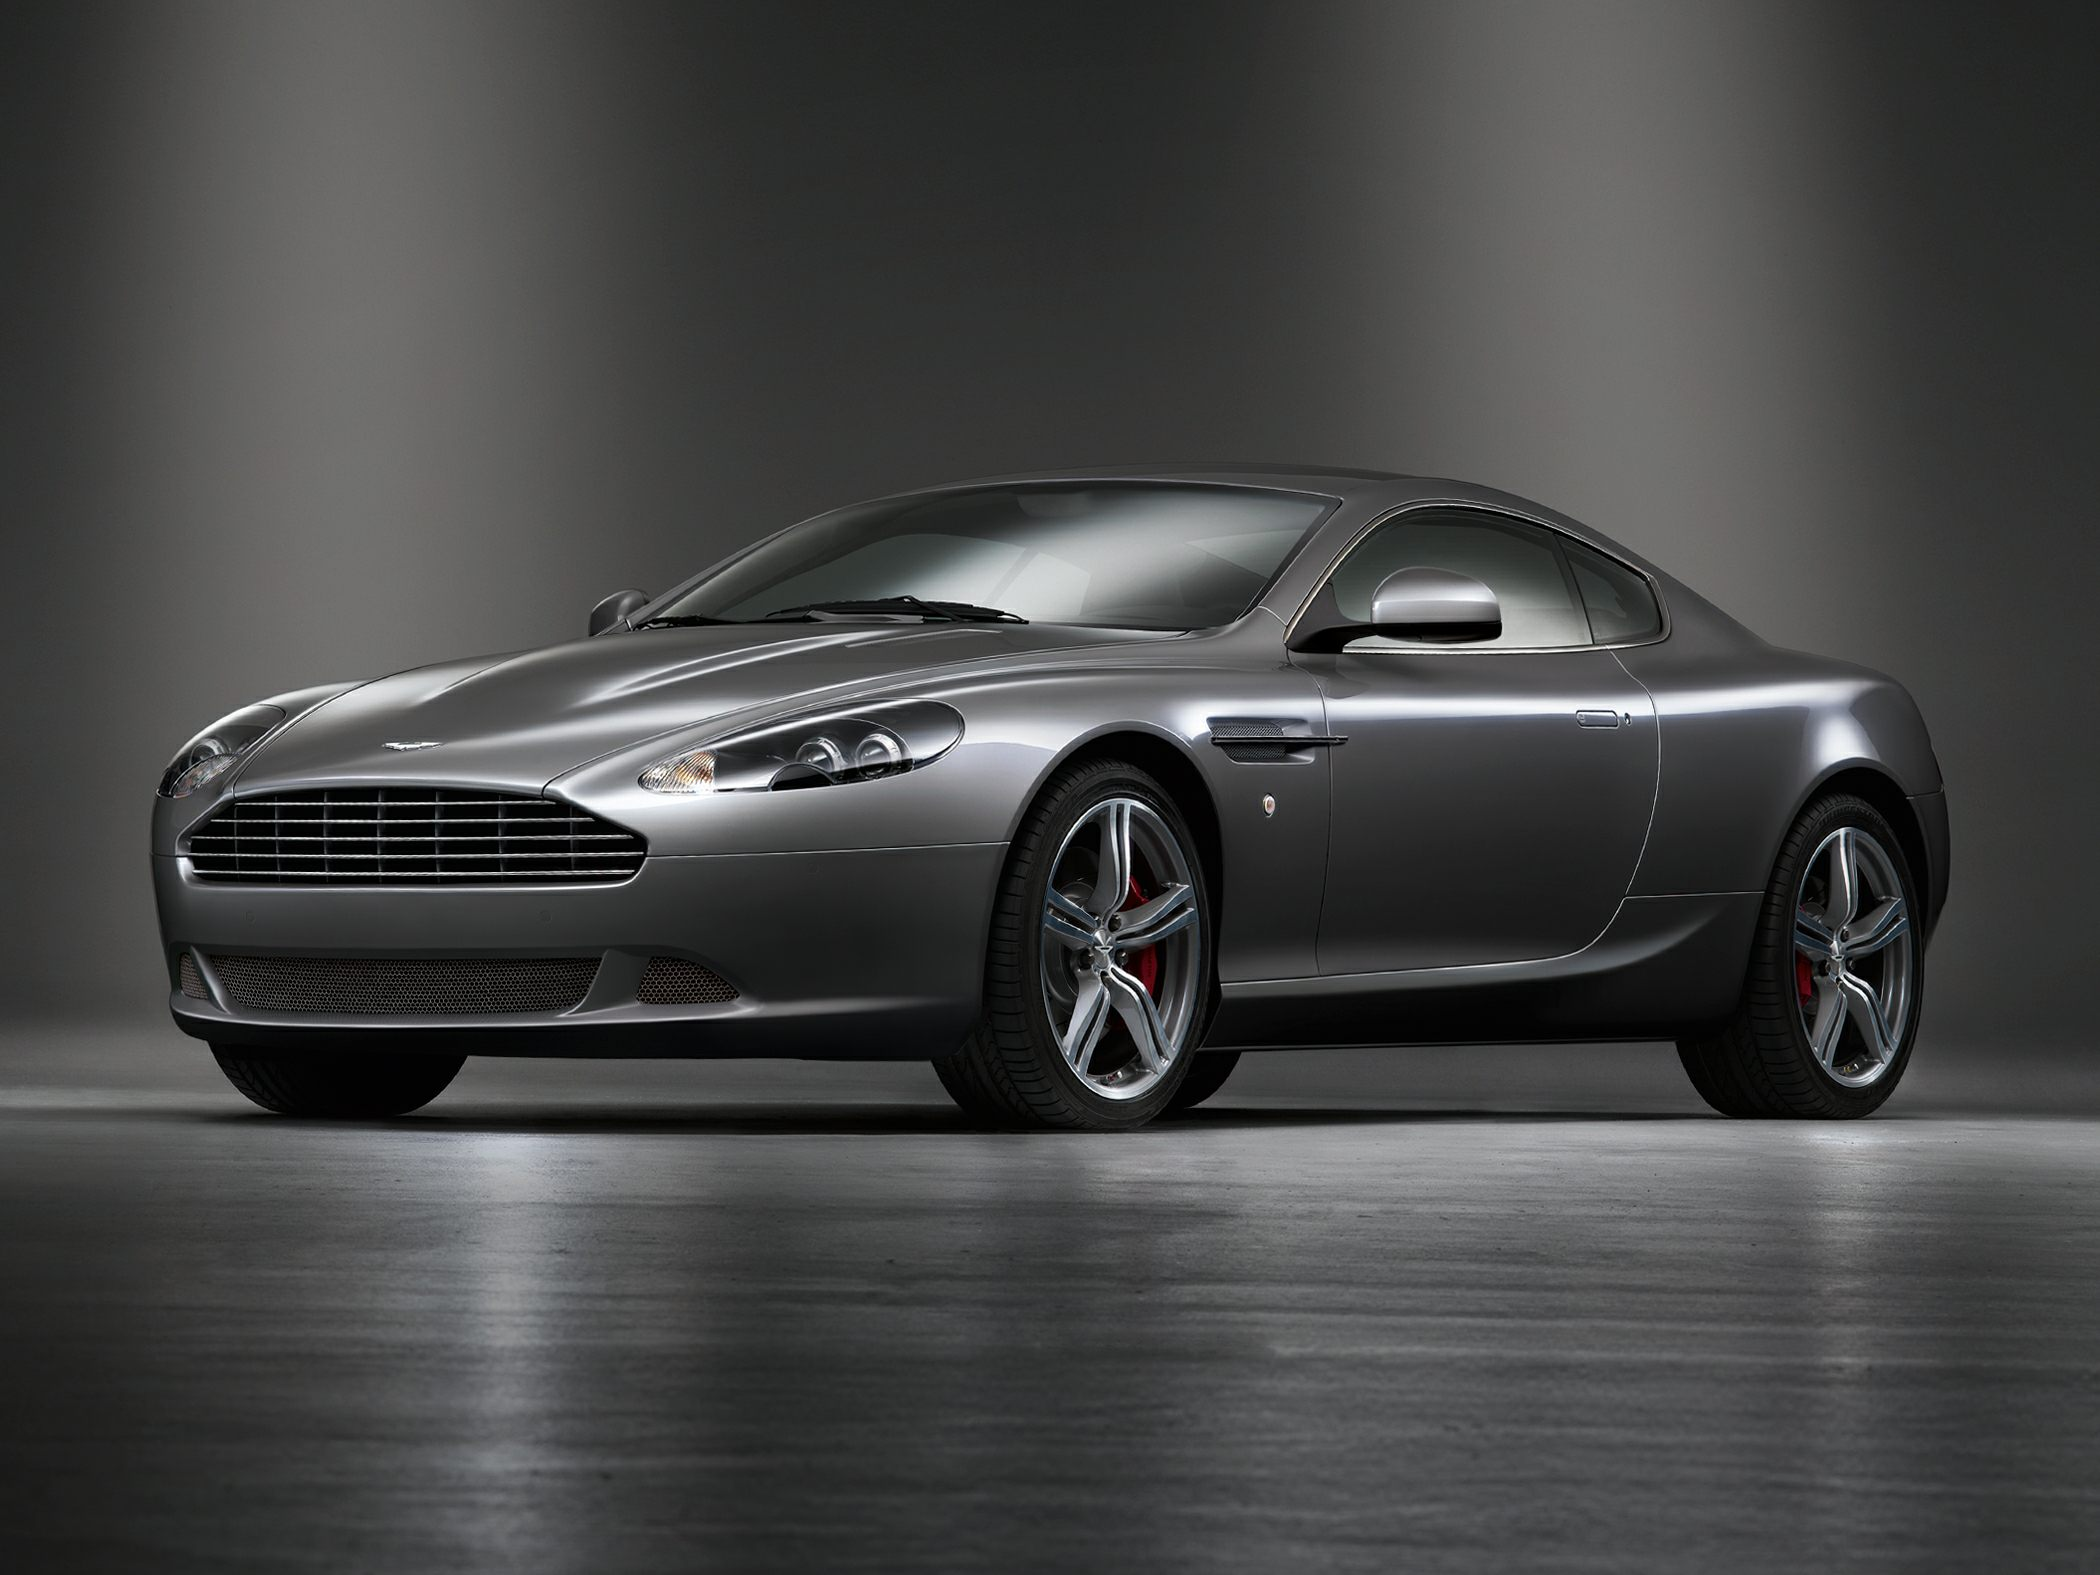 2011 Aston Martin Db9 Specs Safety Rating Amp Mpg Carsdirect